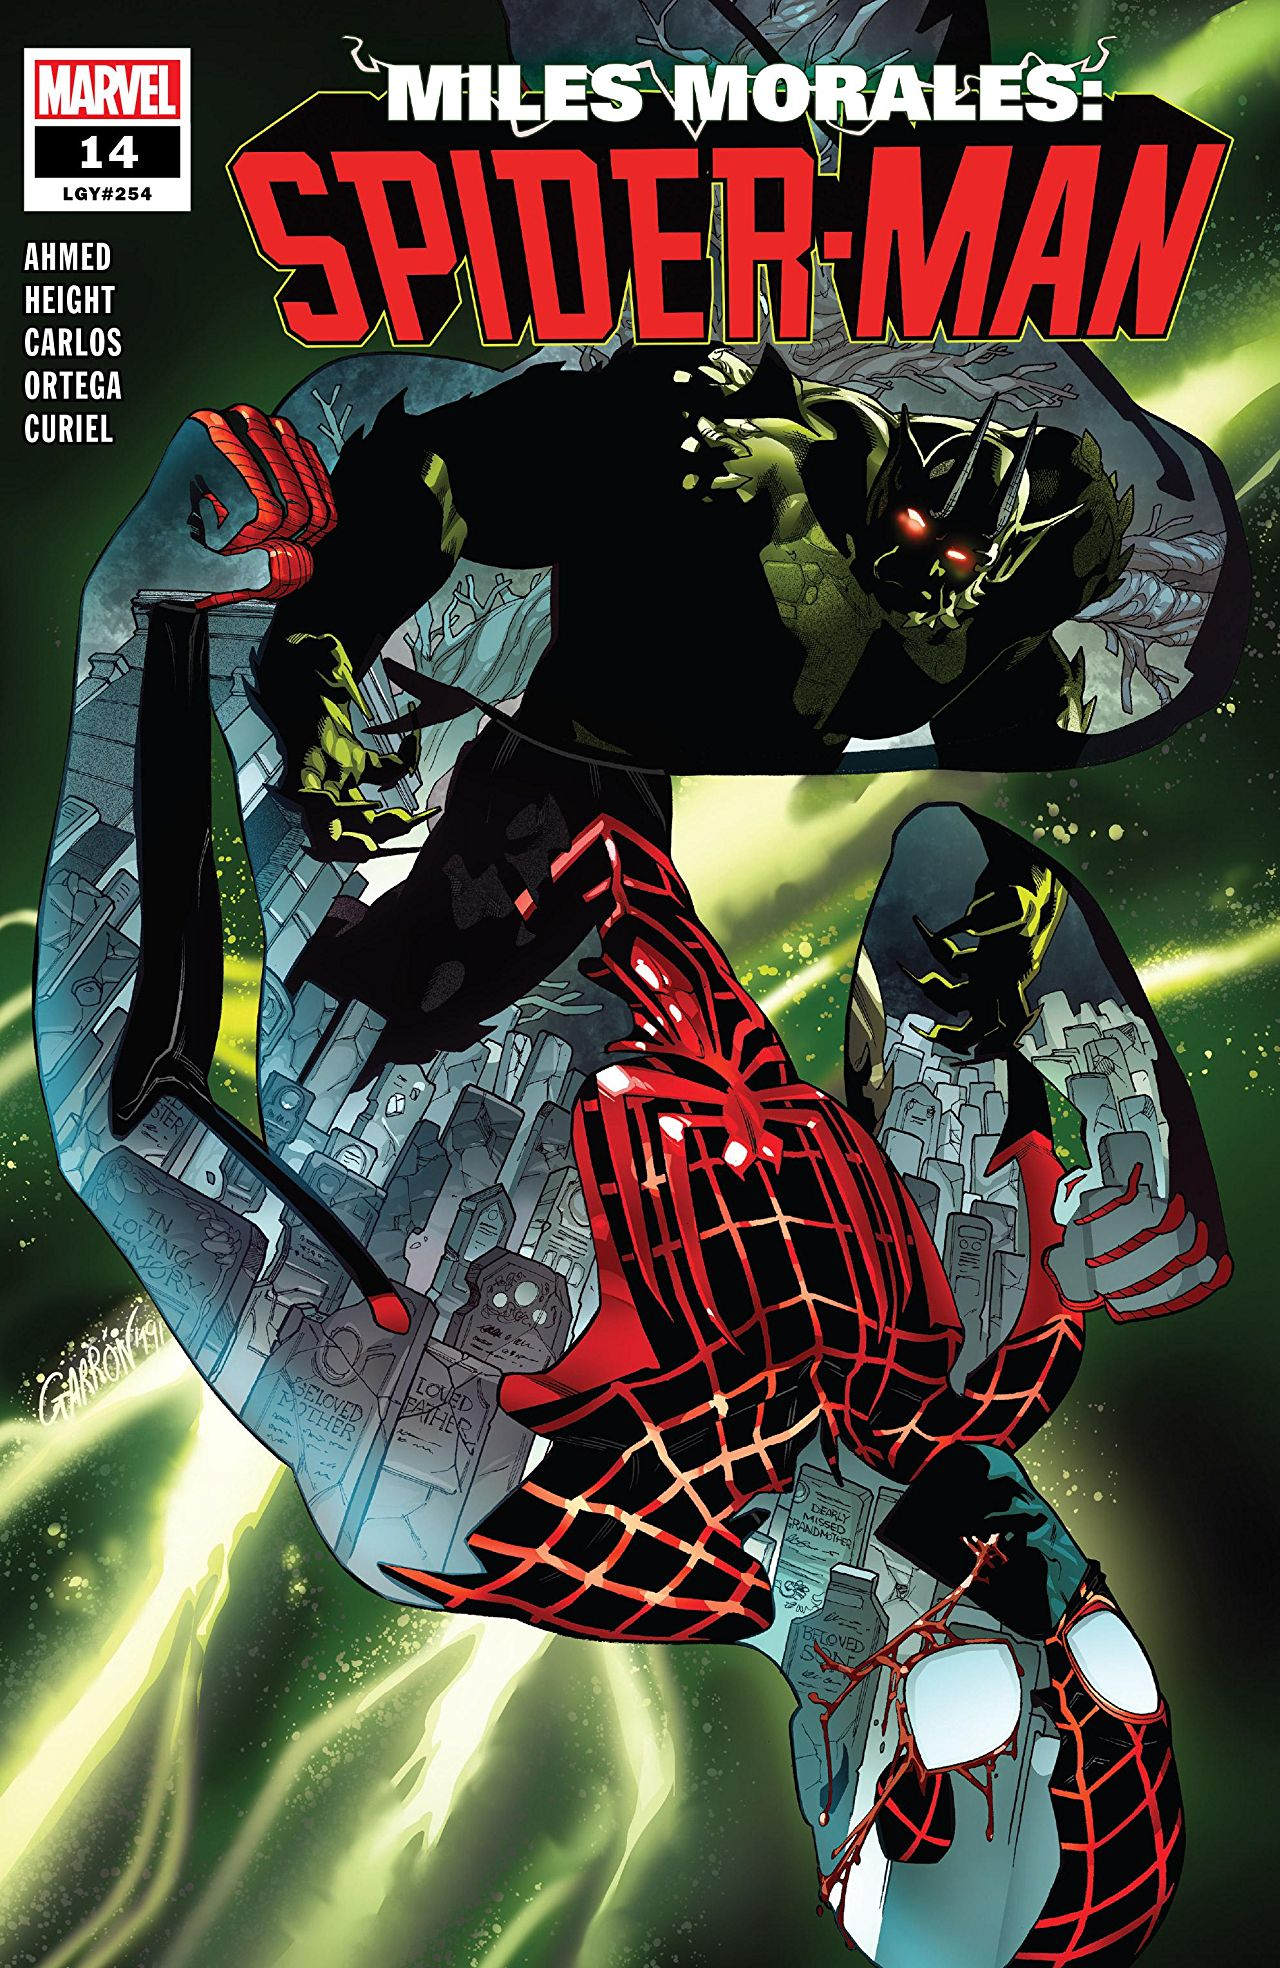 Miles Morales: Spider-Man Vol 1 14